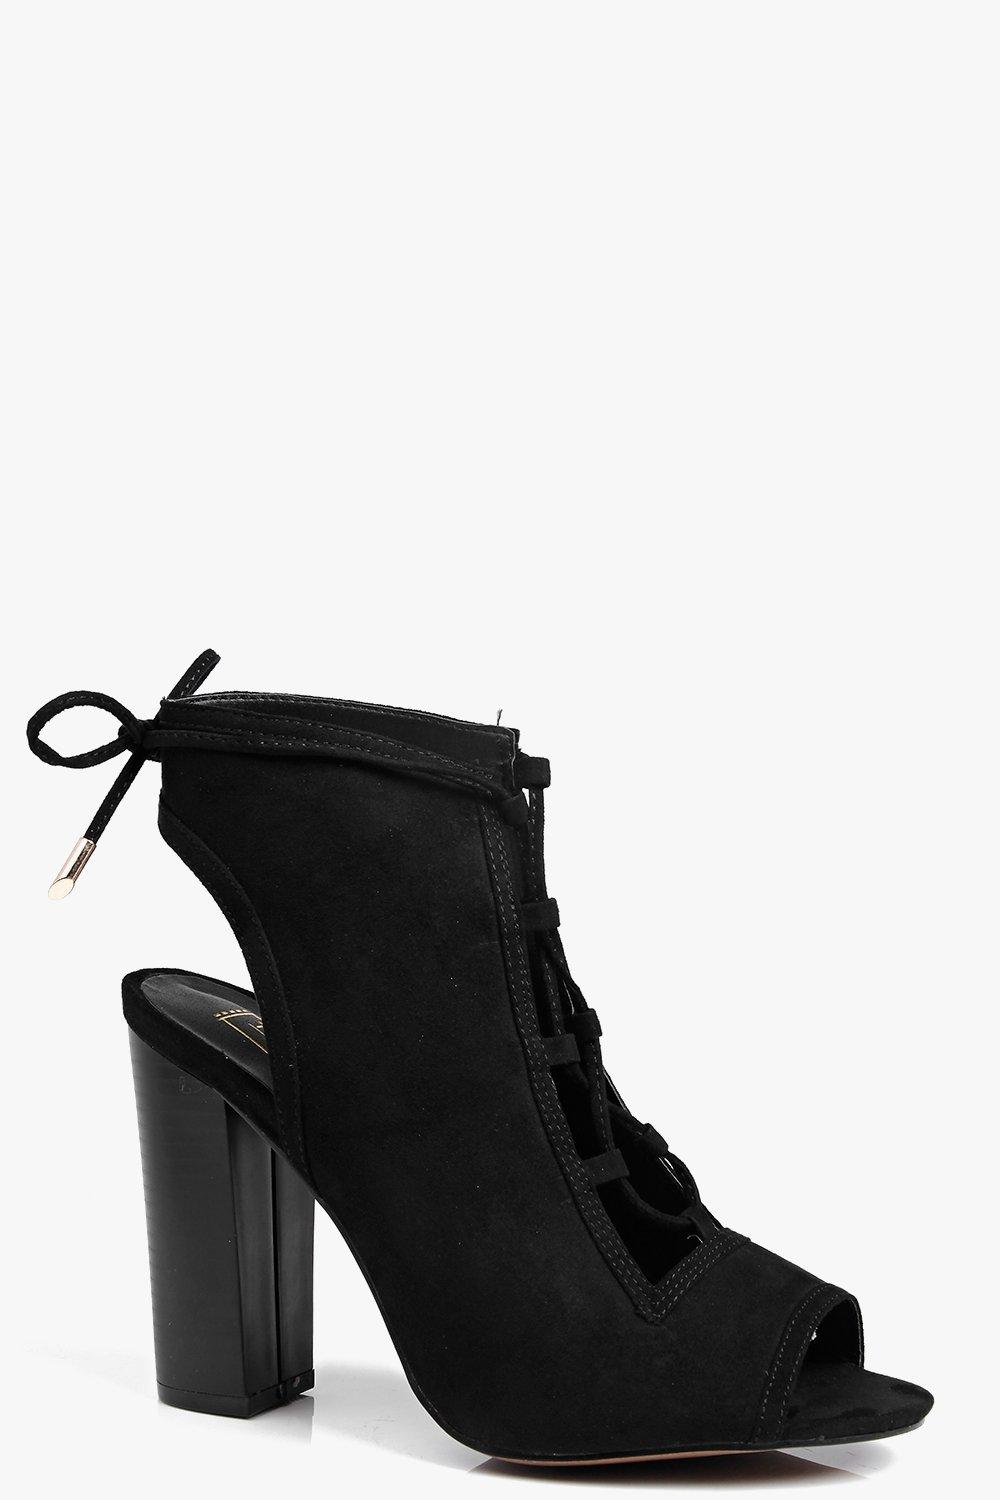 Lauren Lace Up Peeptoe Shoe Boot